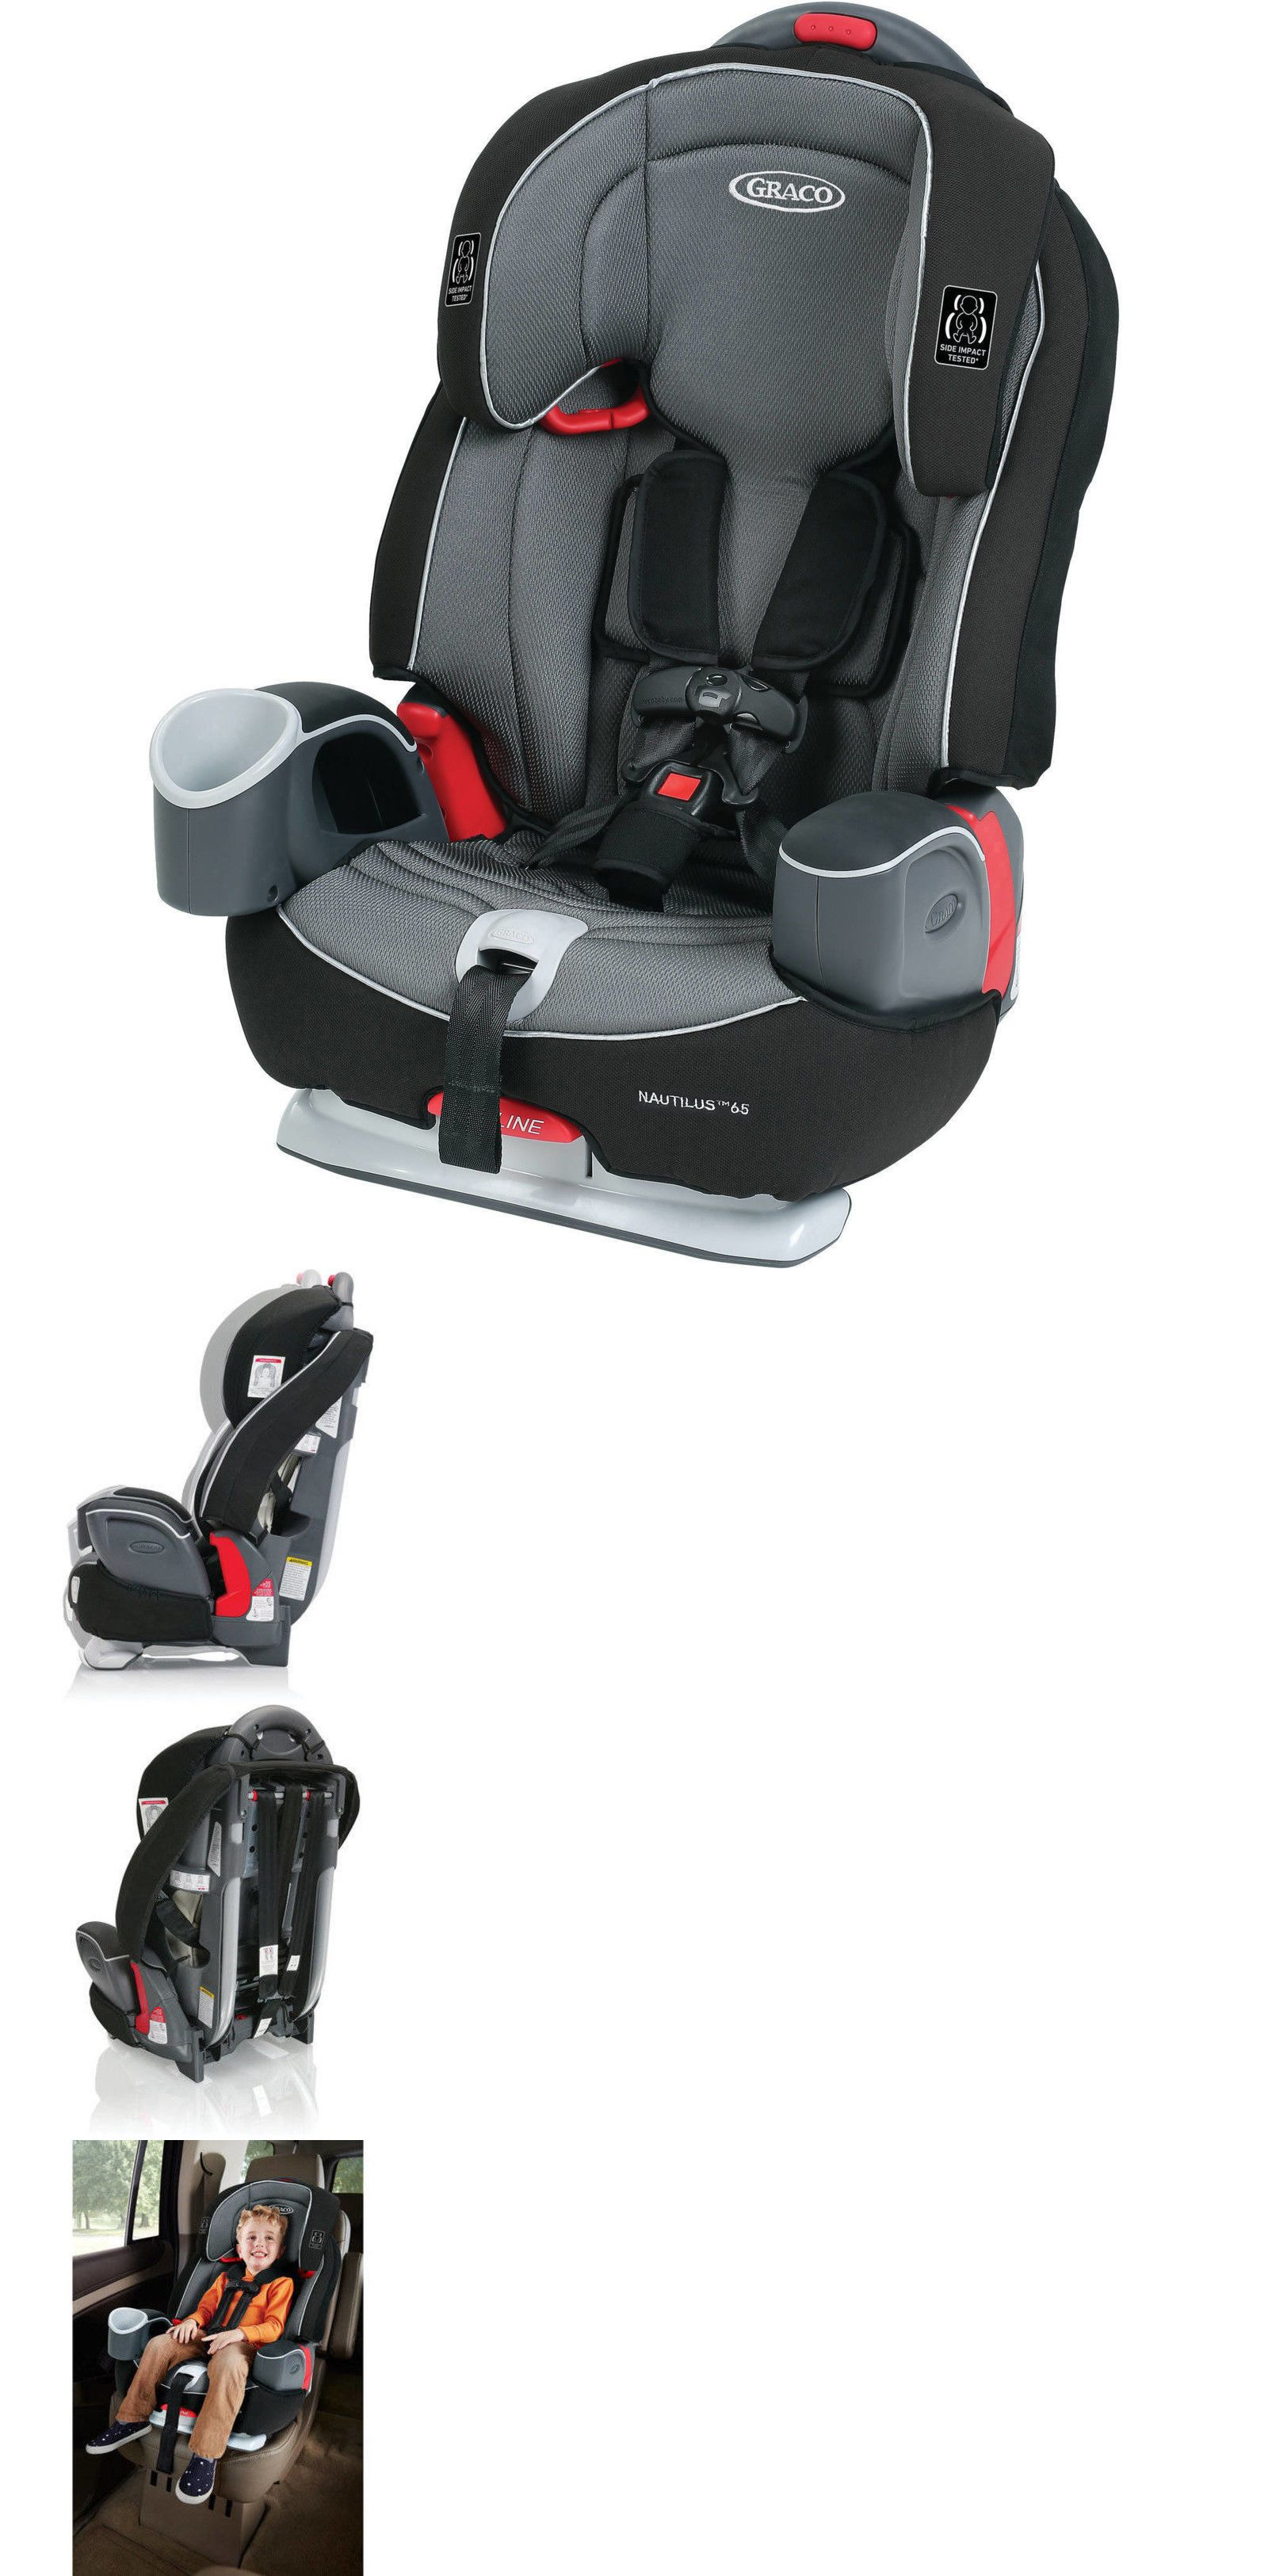 Convertible Car Seat 5 40lbs 66695 Graco Nautilus 65 3 In 1 Multi Use Harness Booster Toddler BUY IT NOW ONLY 10654 On EBay